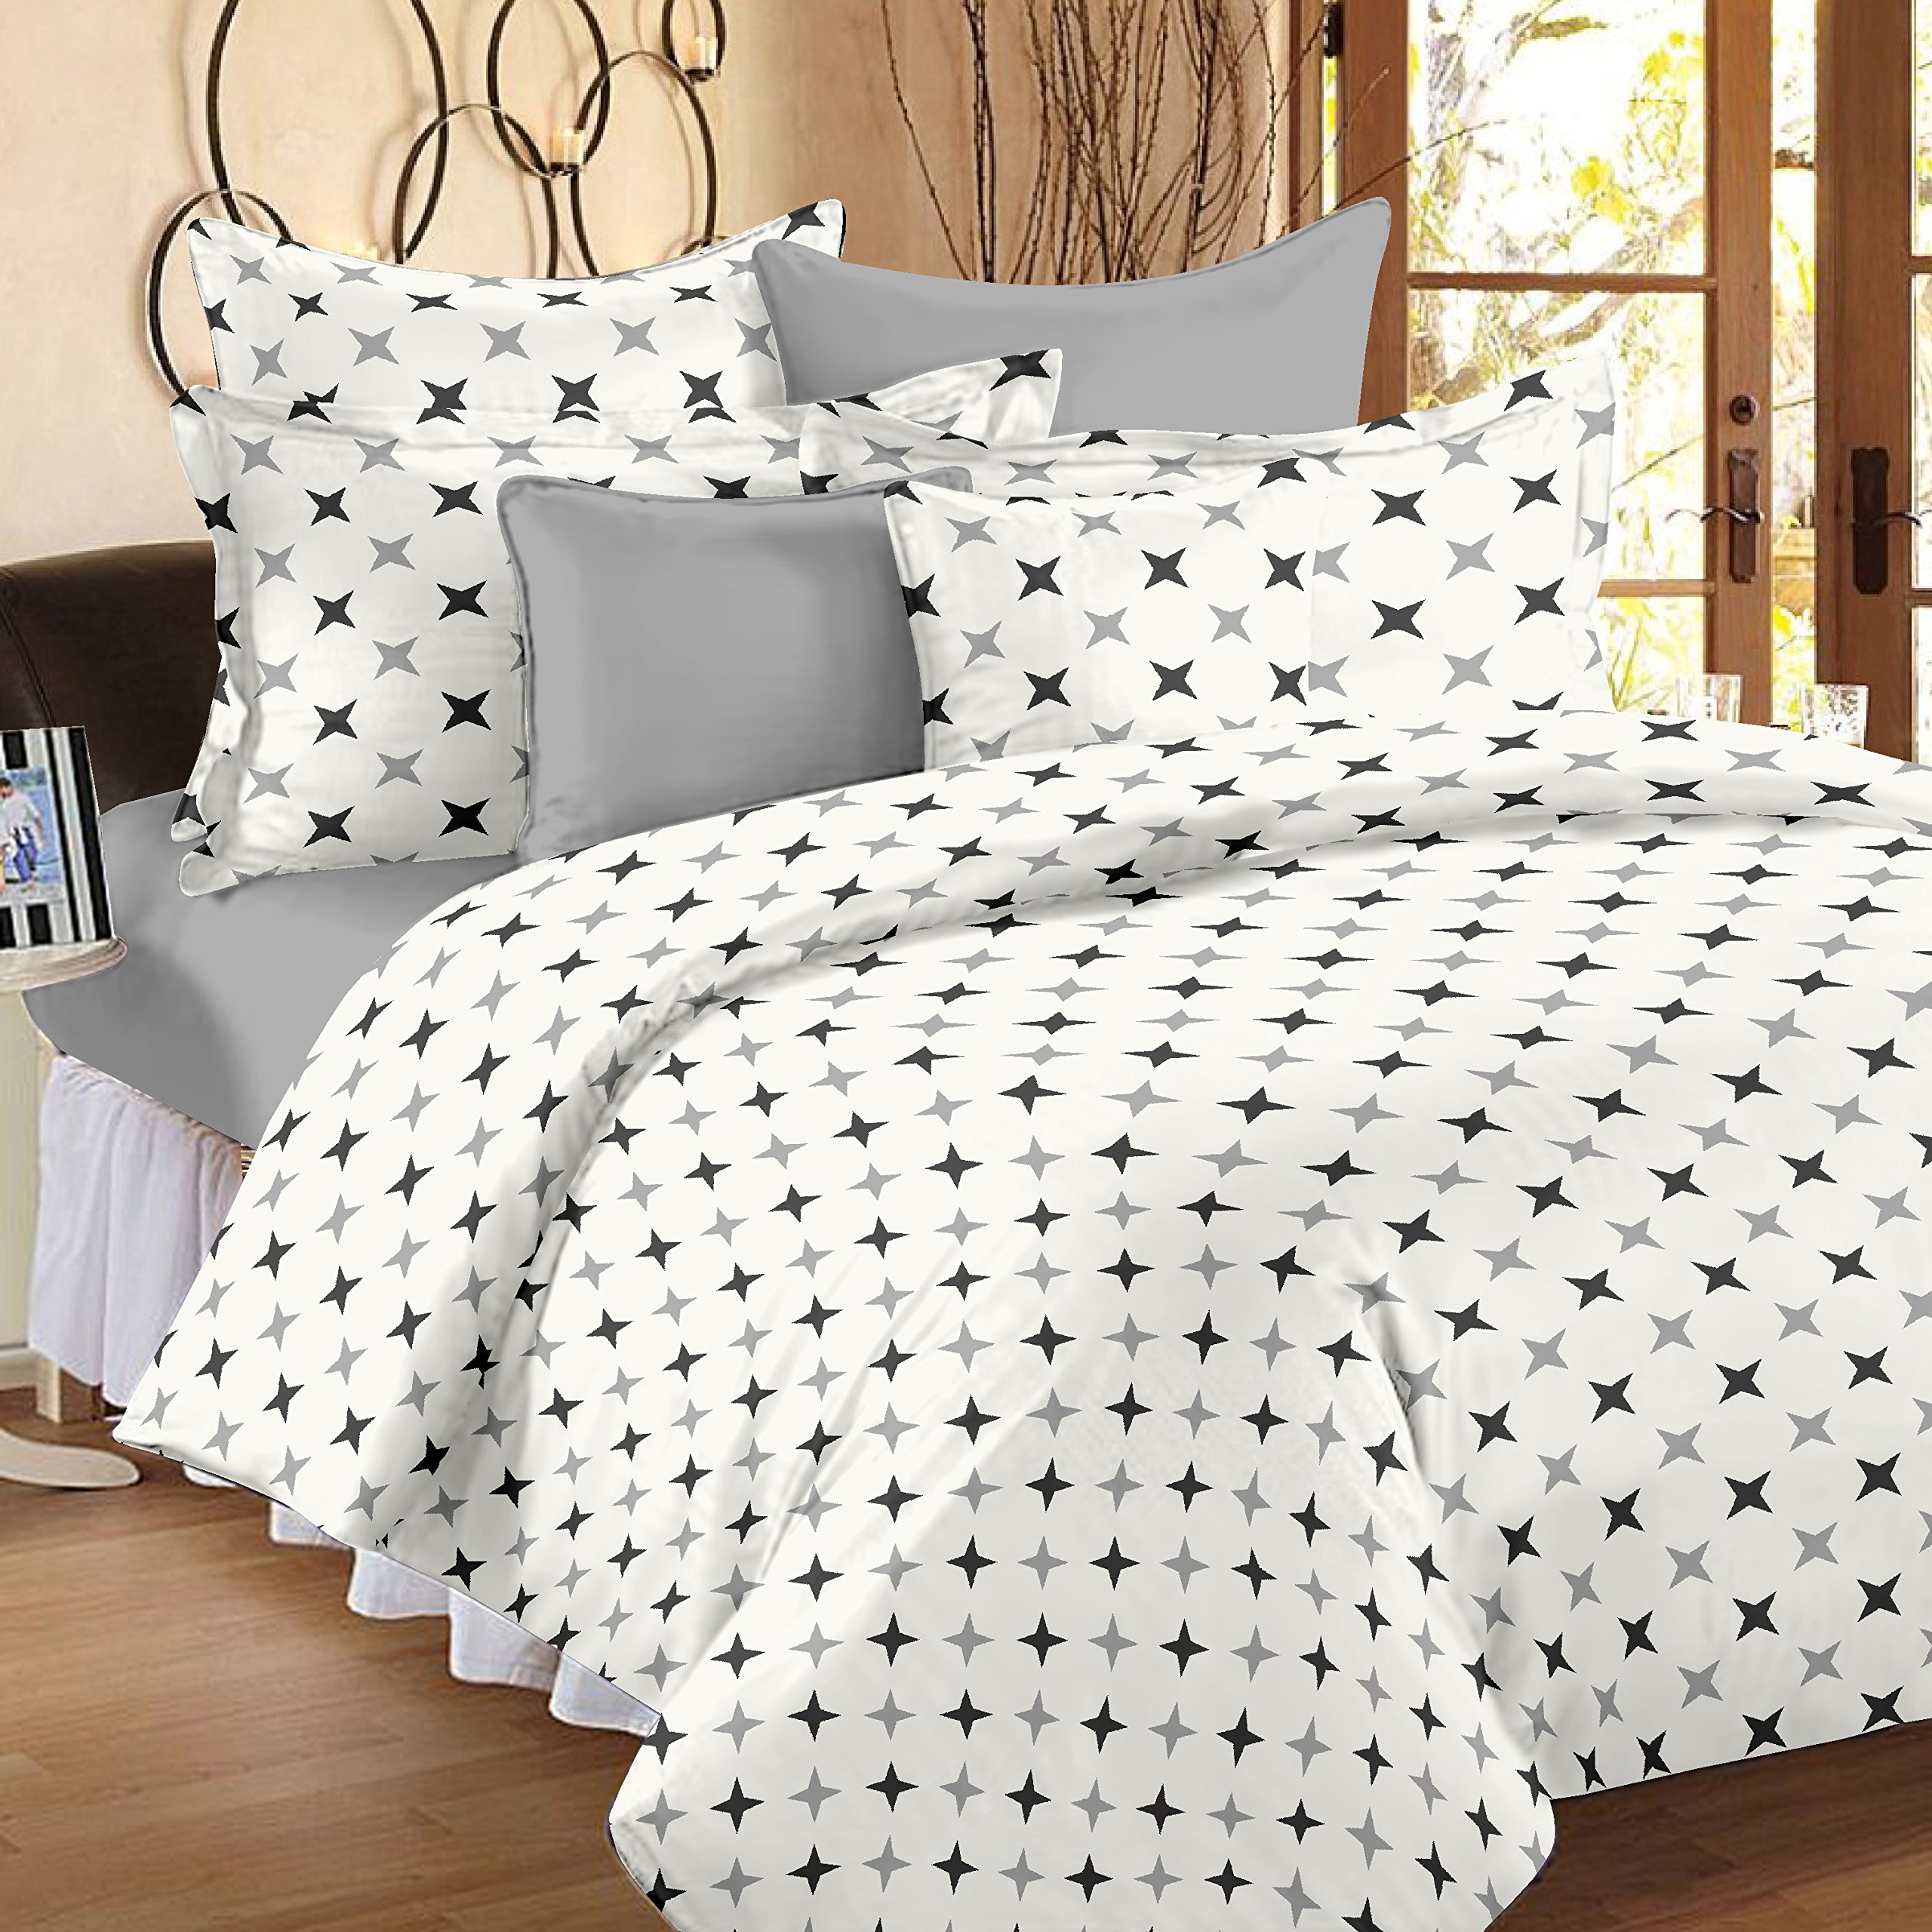 Ahmedabad Cotton Comfort 160 TC Double Bedsheet with 2 Pillow Covers - Geometric, White and Grey product image